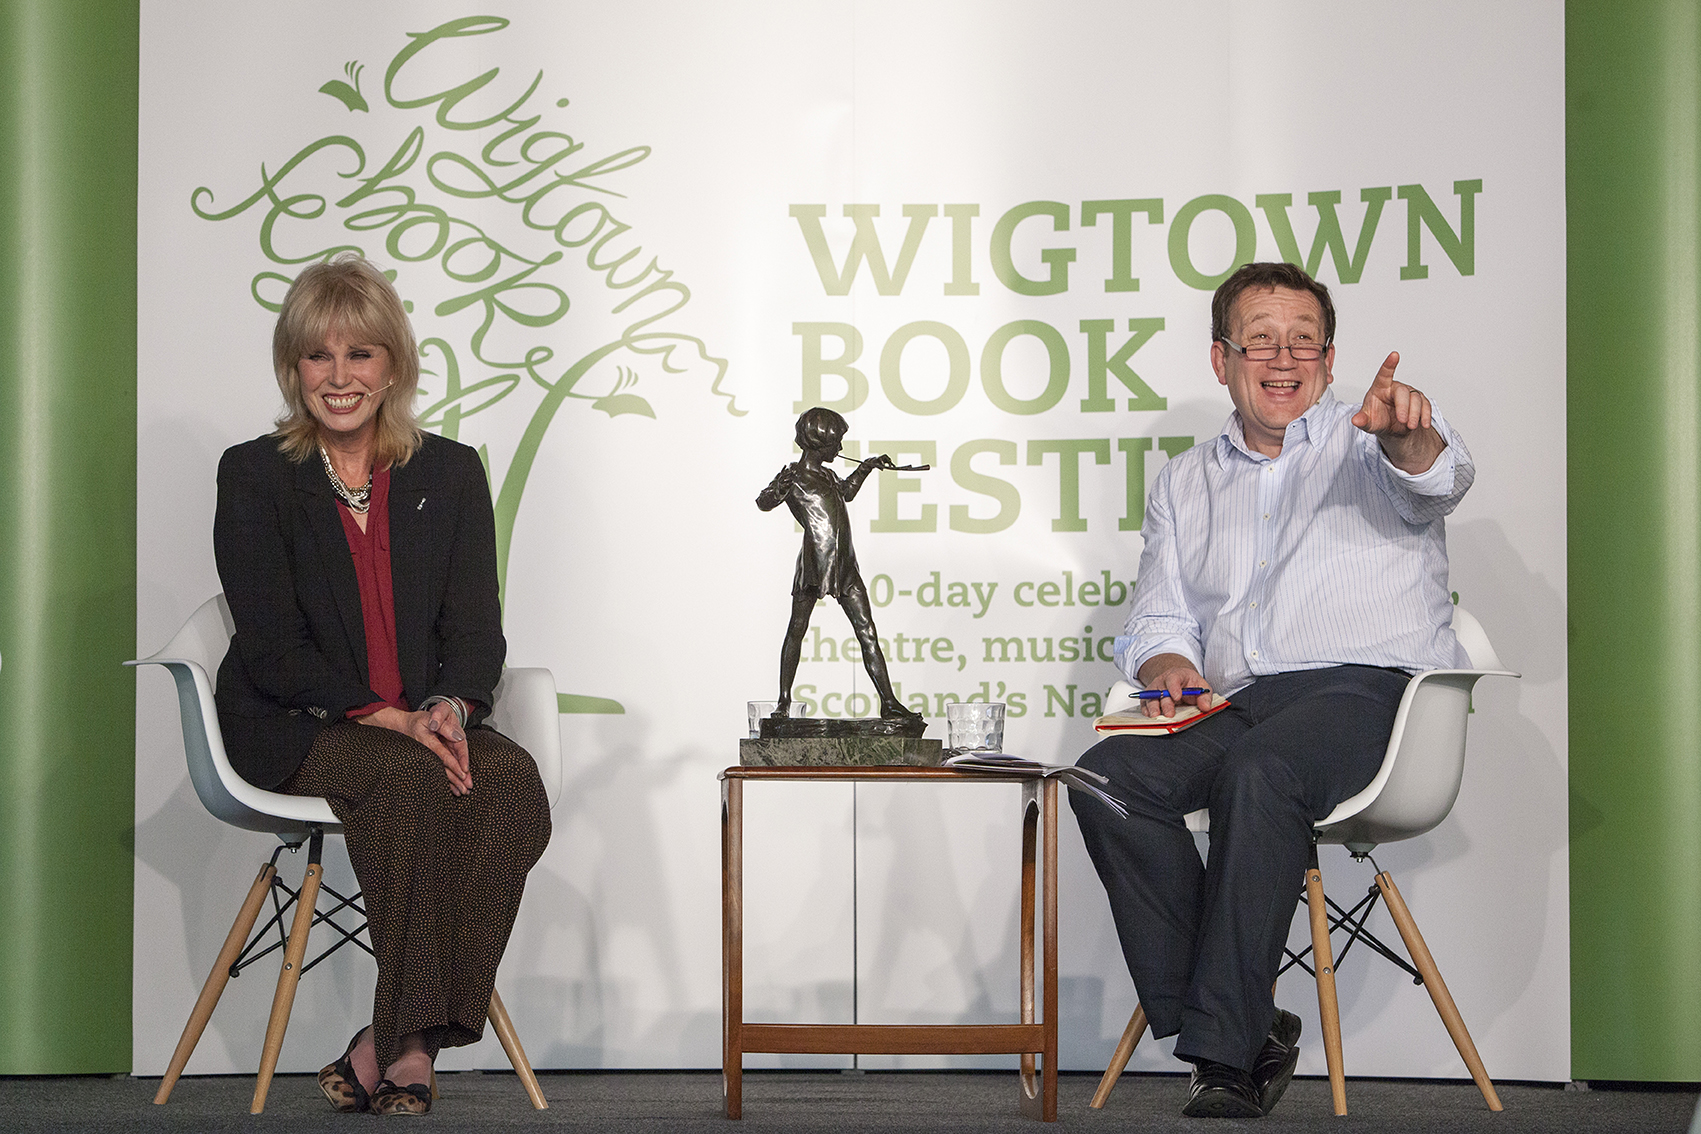 Joanna Lumley and Andrew Castle at Wigtown Book Festival